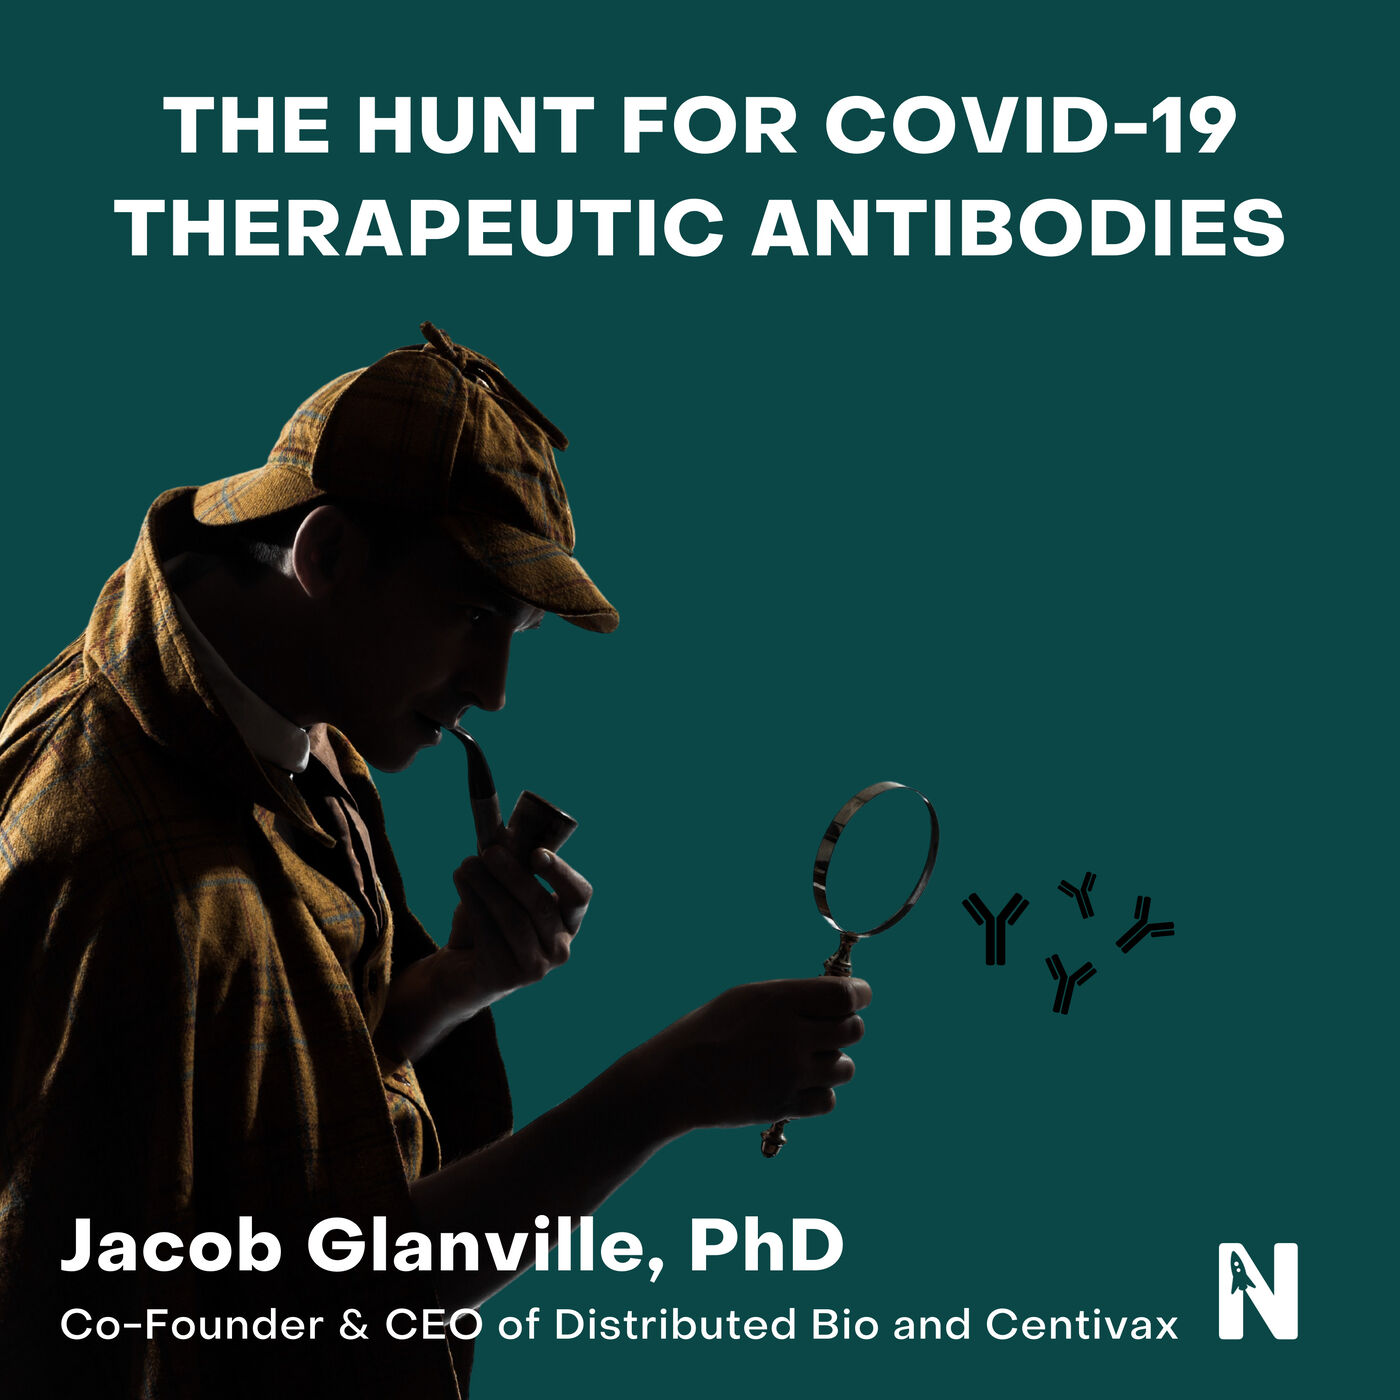 The Hunt for COVID-19 Therapeutic Antibodies   Jacob Glanville